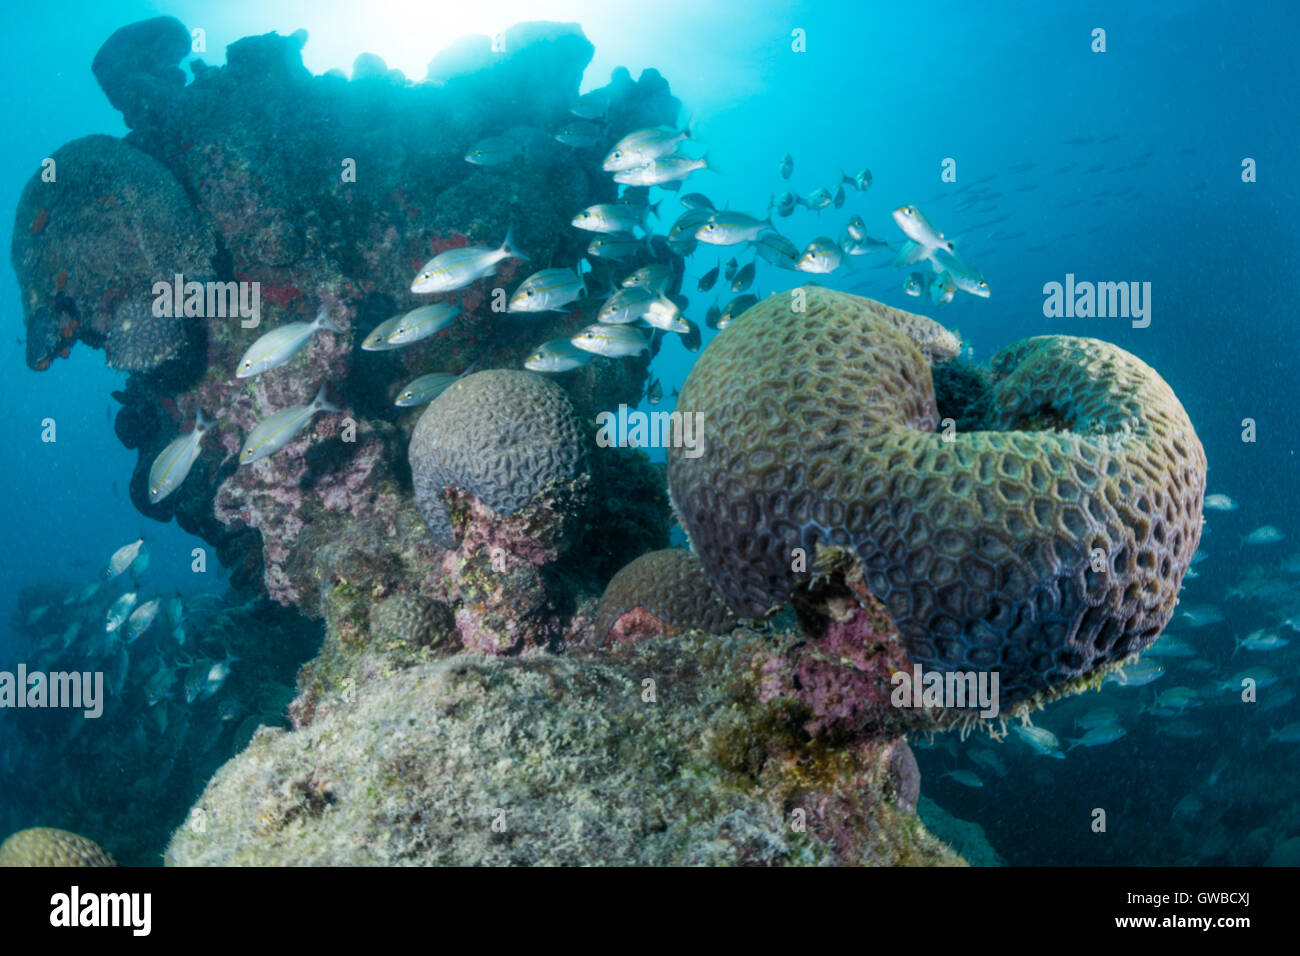 school of fish at coral reef in Abrolhos National Marine Park, Bahia state, Brazil - Stock Image